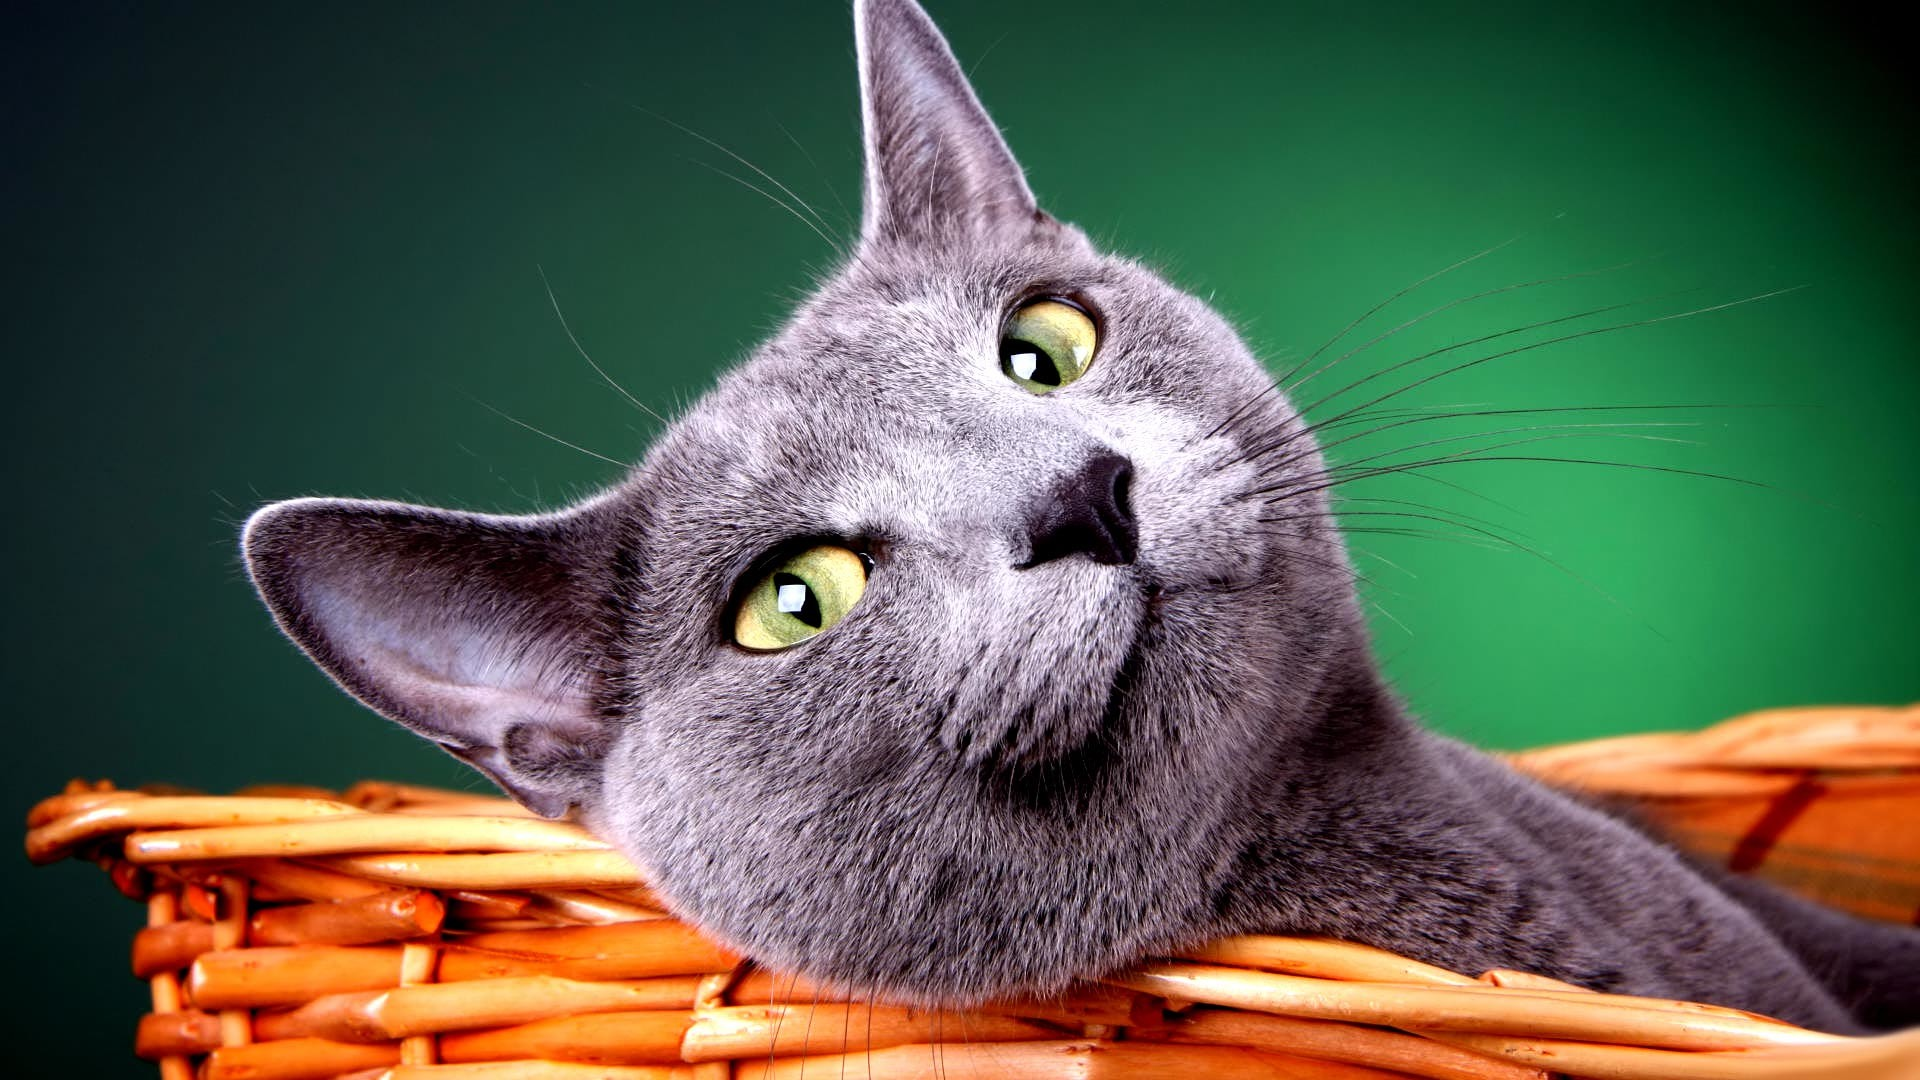 White Baby Kittens With Blue Eyes HD Cat Wallpapers 1920...